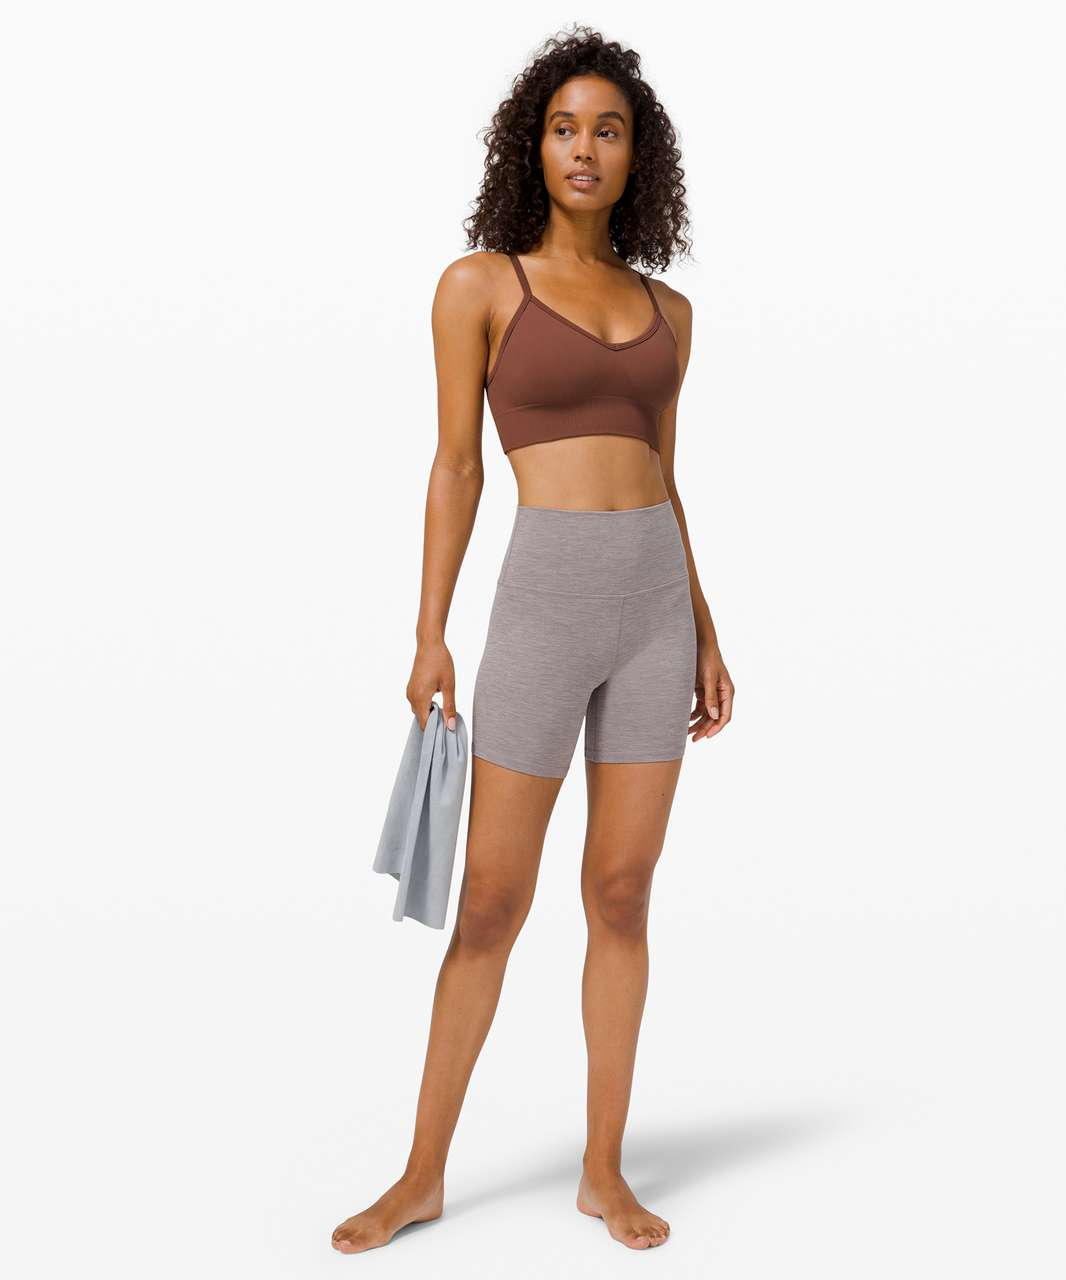 Lululemon Ebb to Street Bra *Light Support, C/D Cup - Ancient Copper